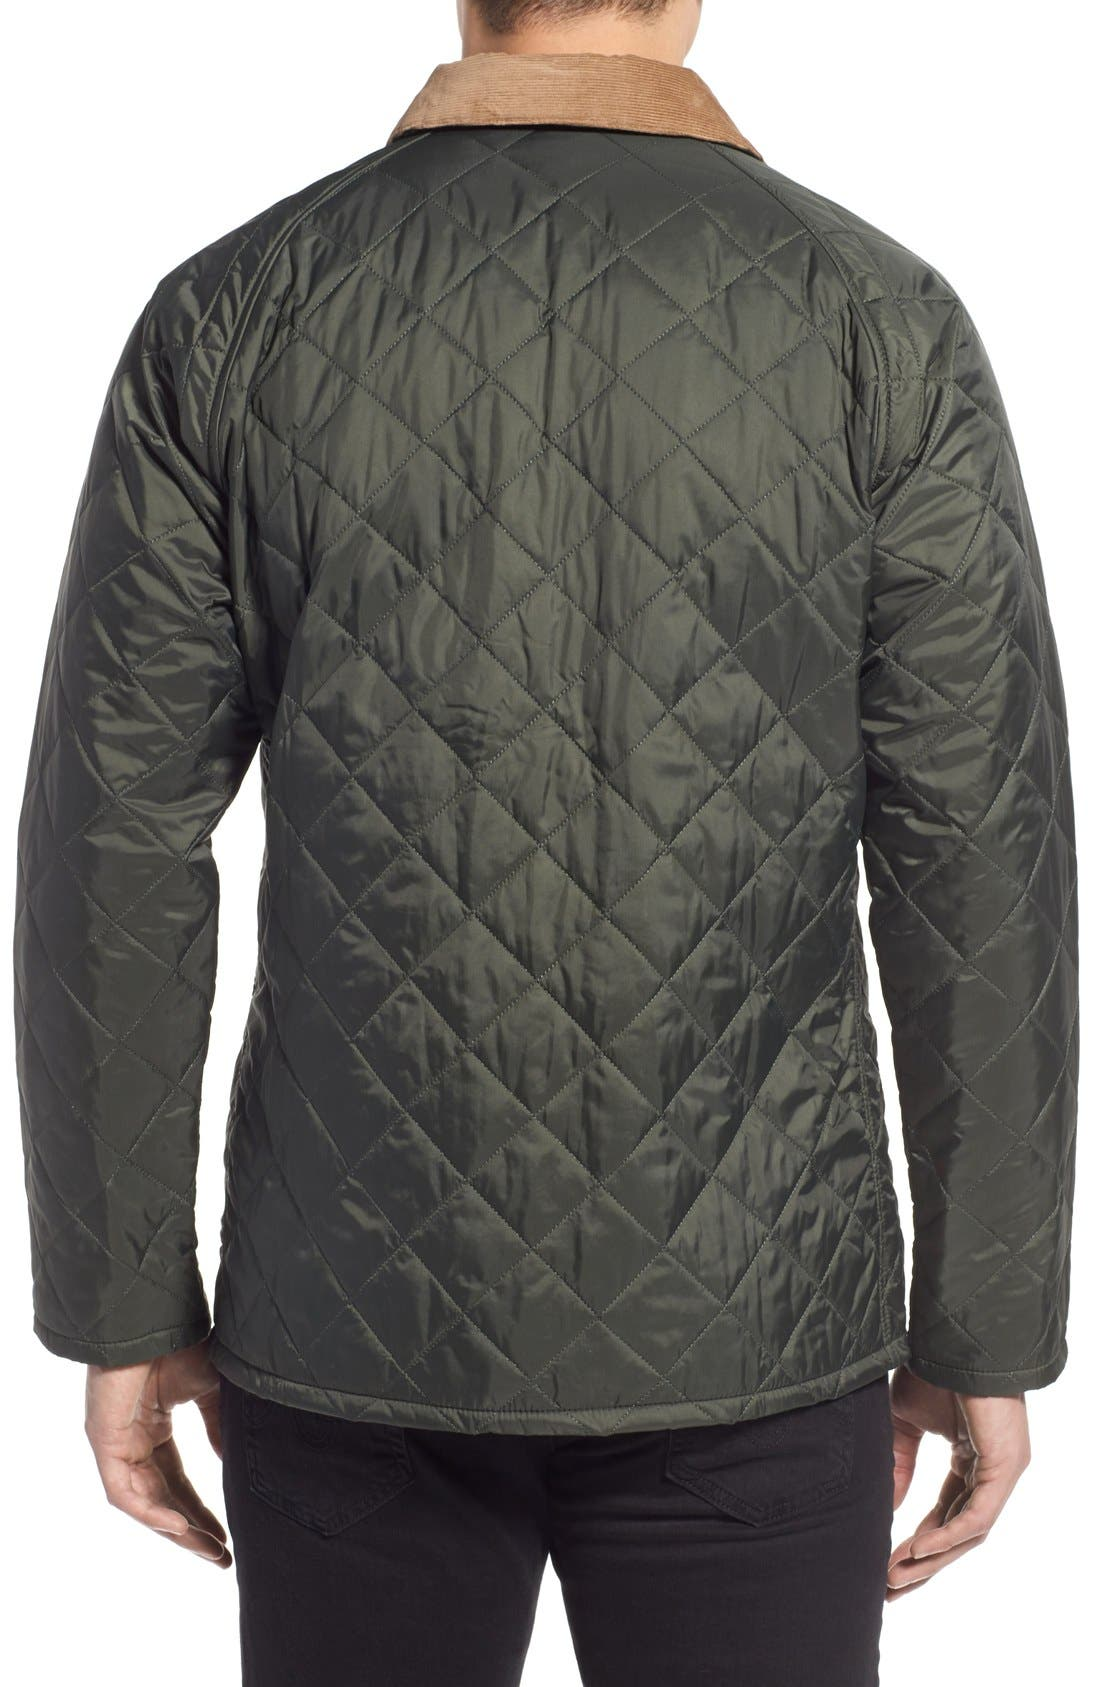 'Canterdale' Slim Fit Water-Resistant Diamond Quilted Jacket,                             Alternate thumbnail 8, color,                             305